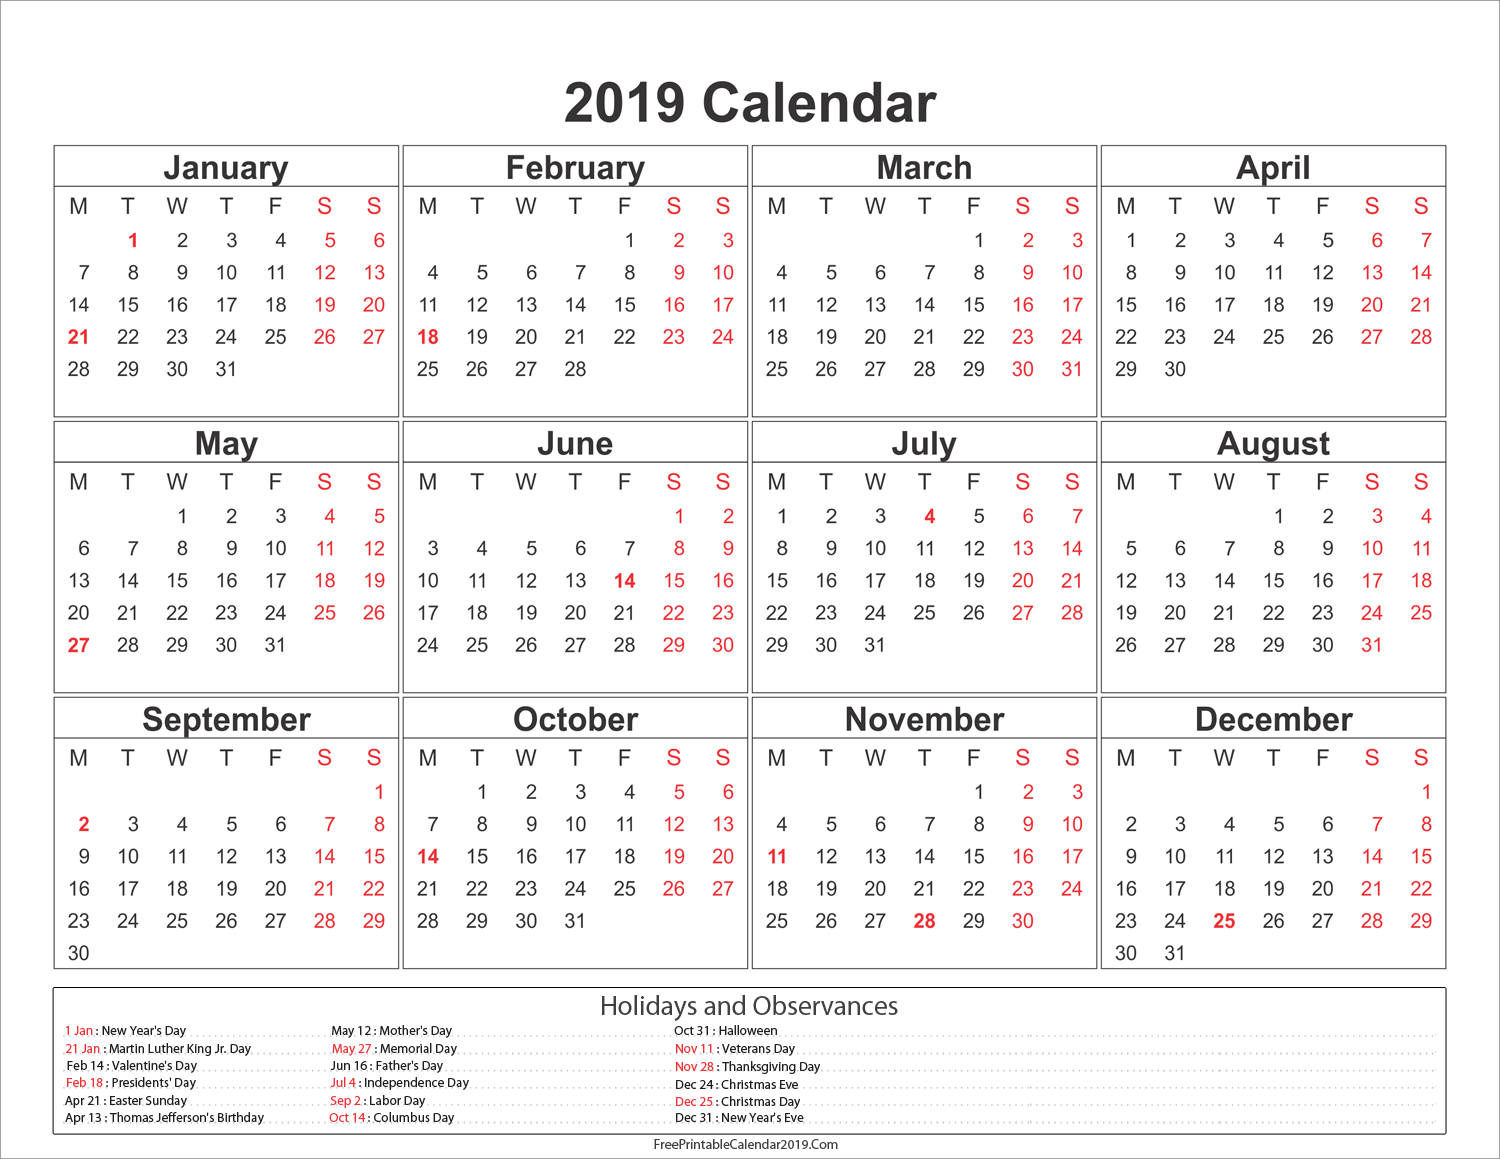 2019 Calendar With Holidays - Us, Uk, Australia, Canada - Calendar U.s. Holiday Calendar 2019